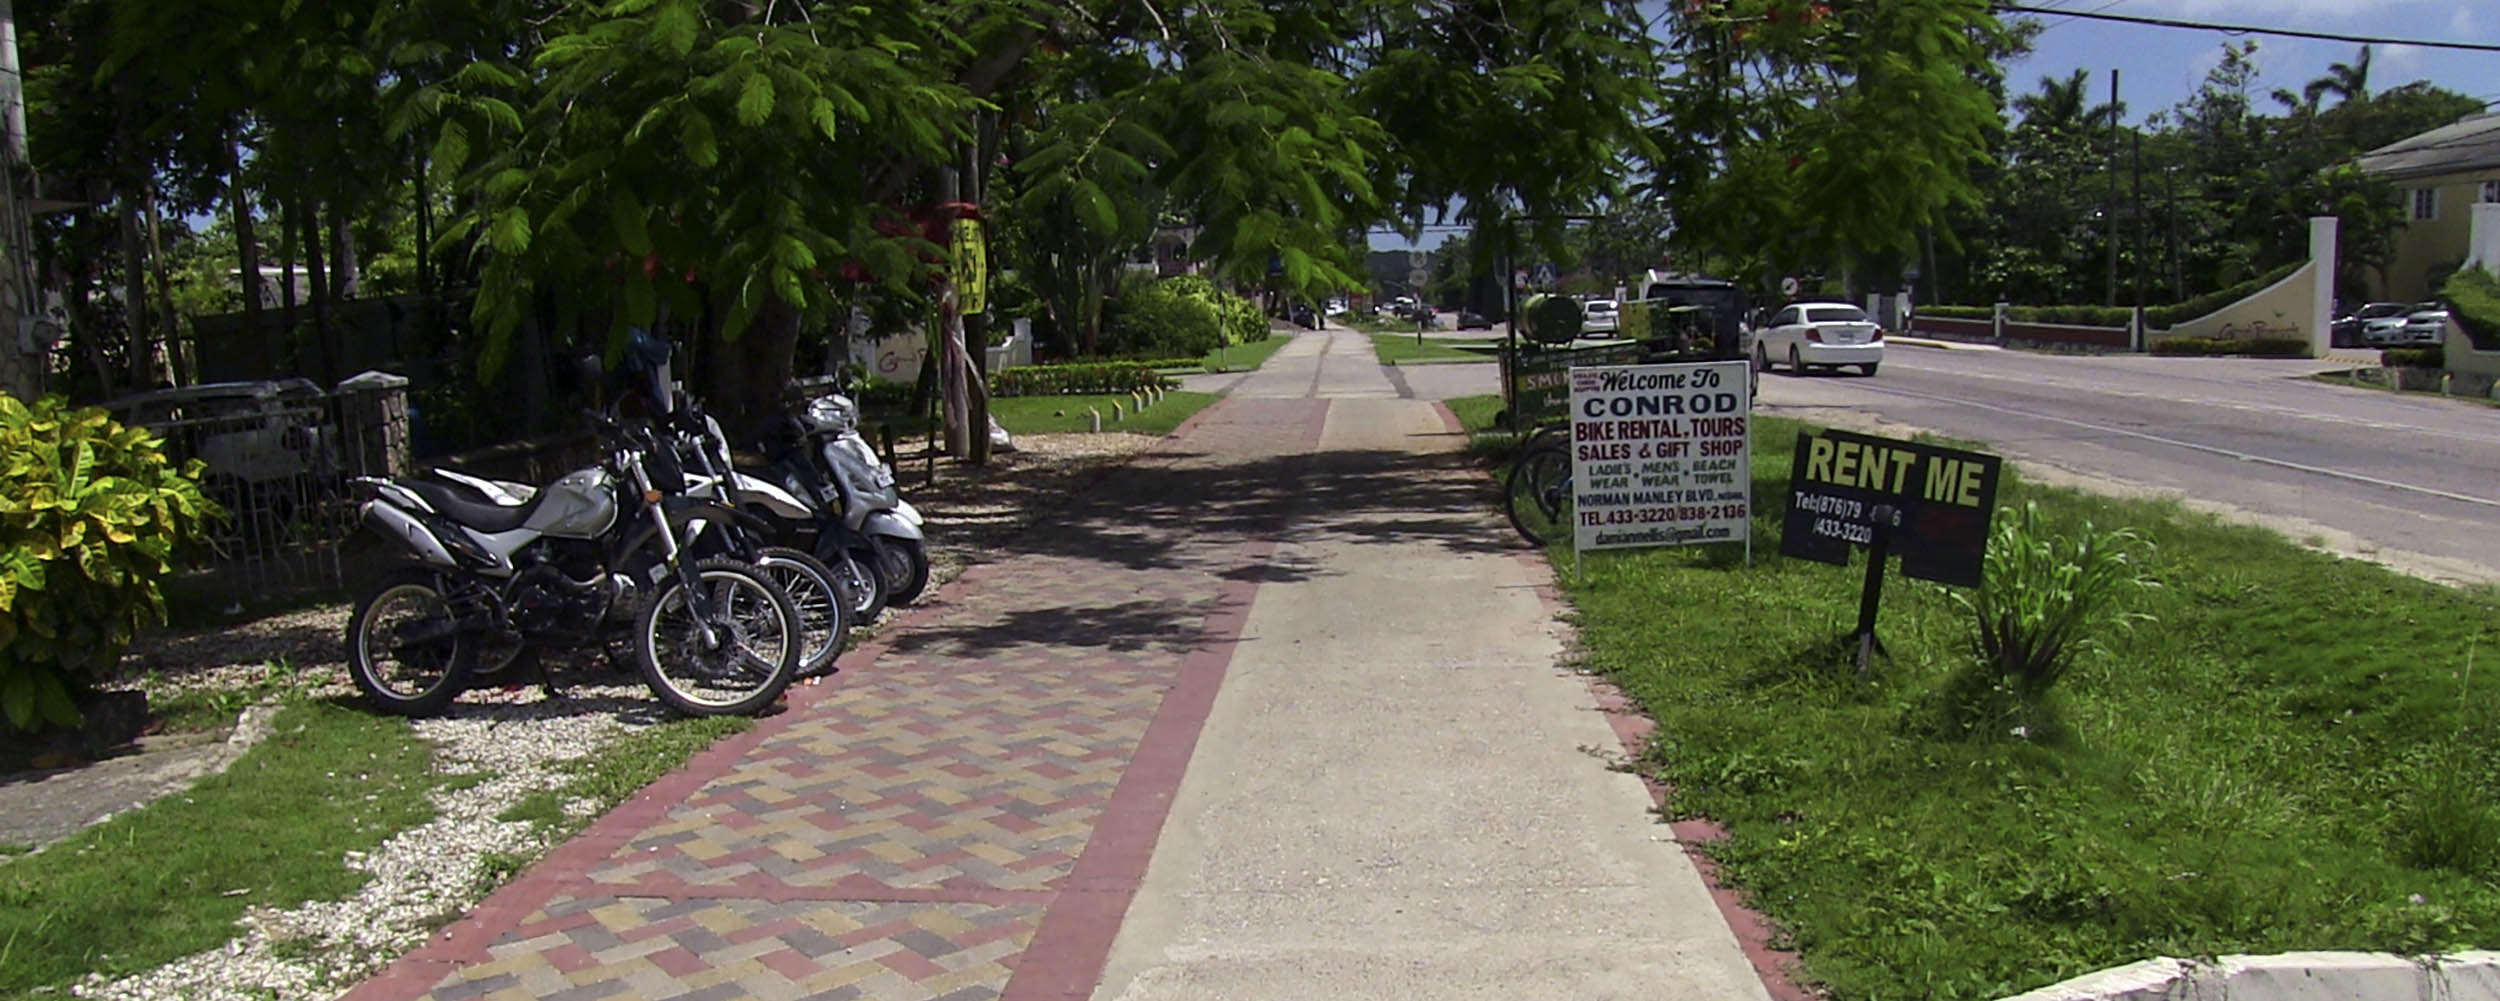 Conrod Bike Rental Tours - Norman Manley Boulevard - Negril Jamaica